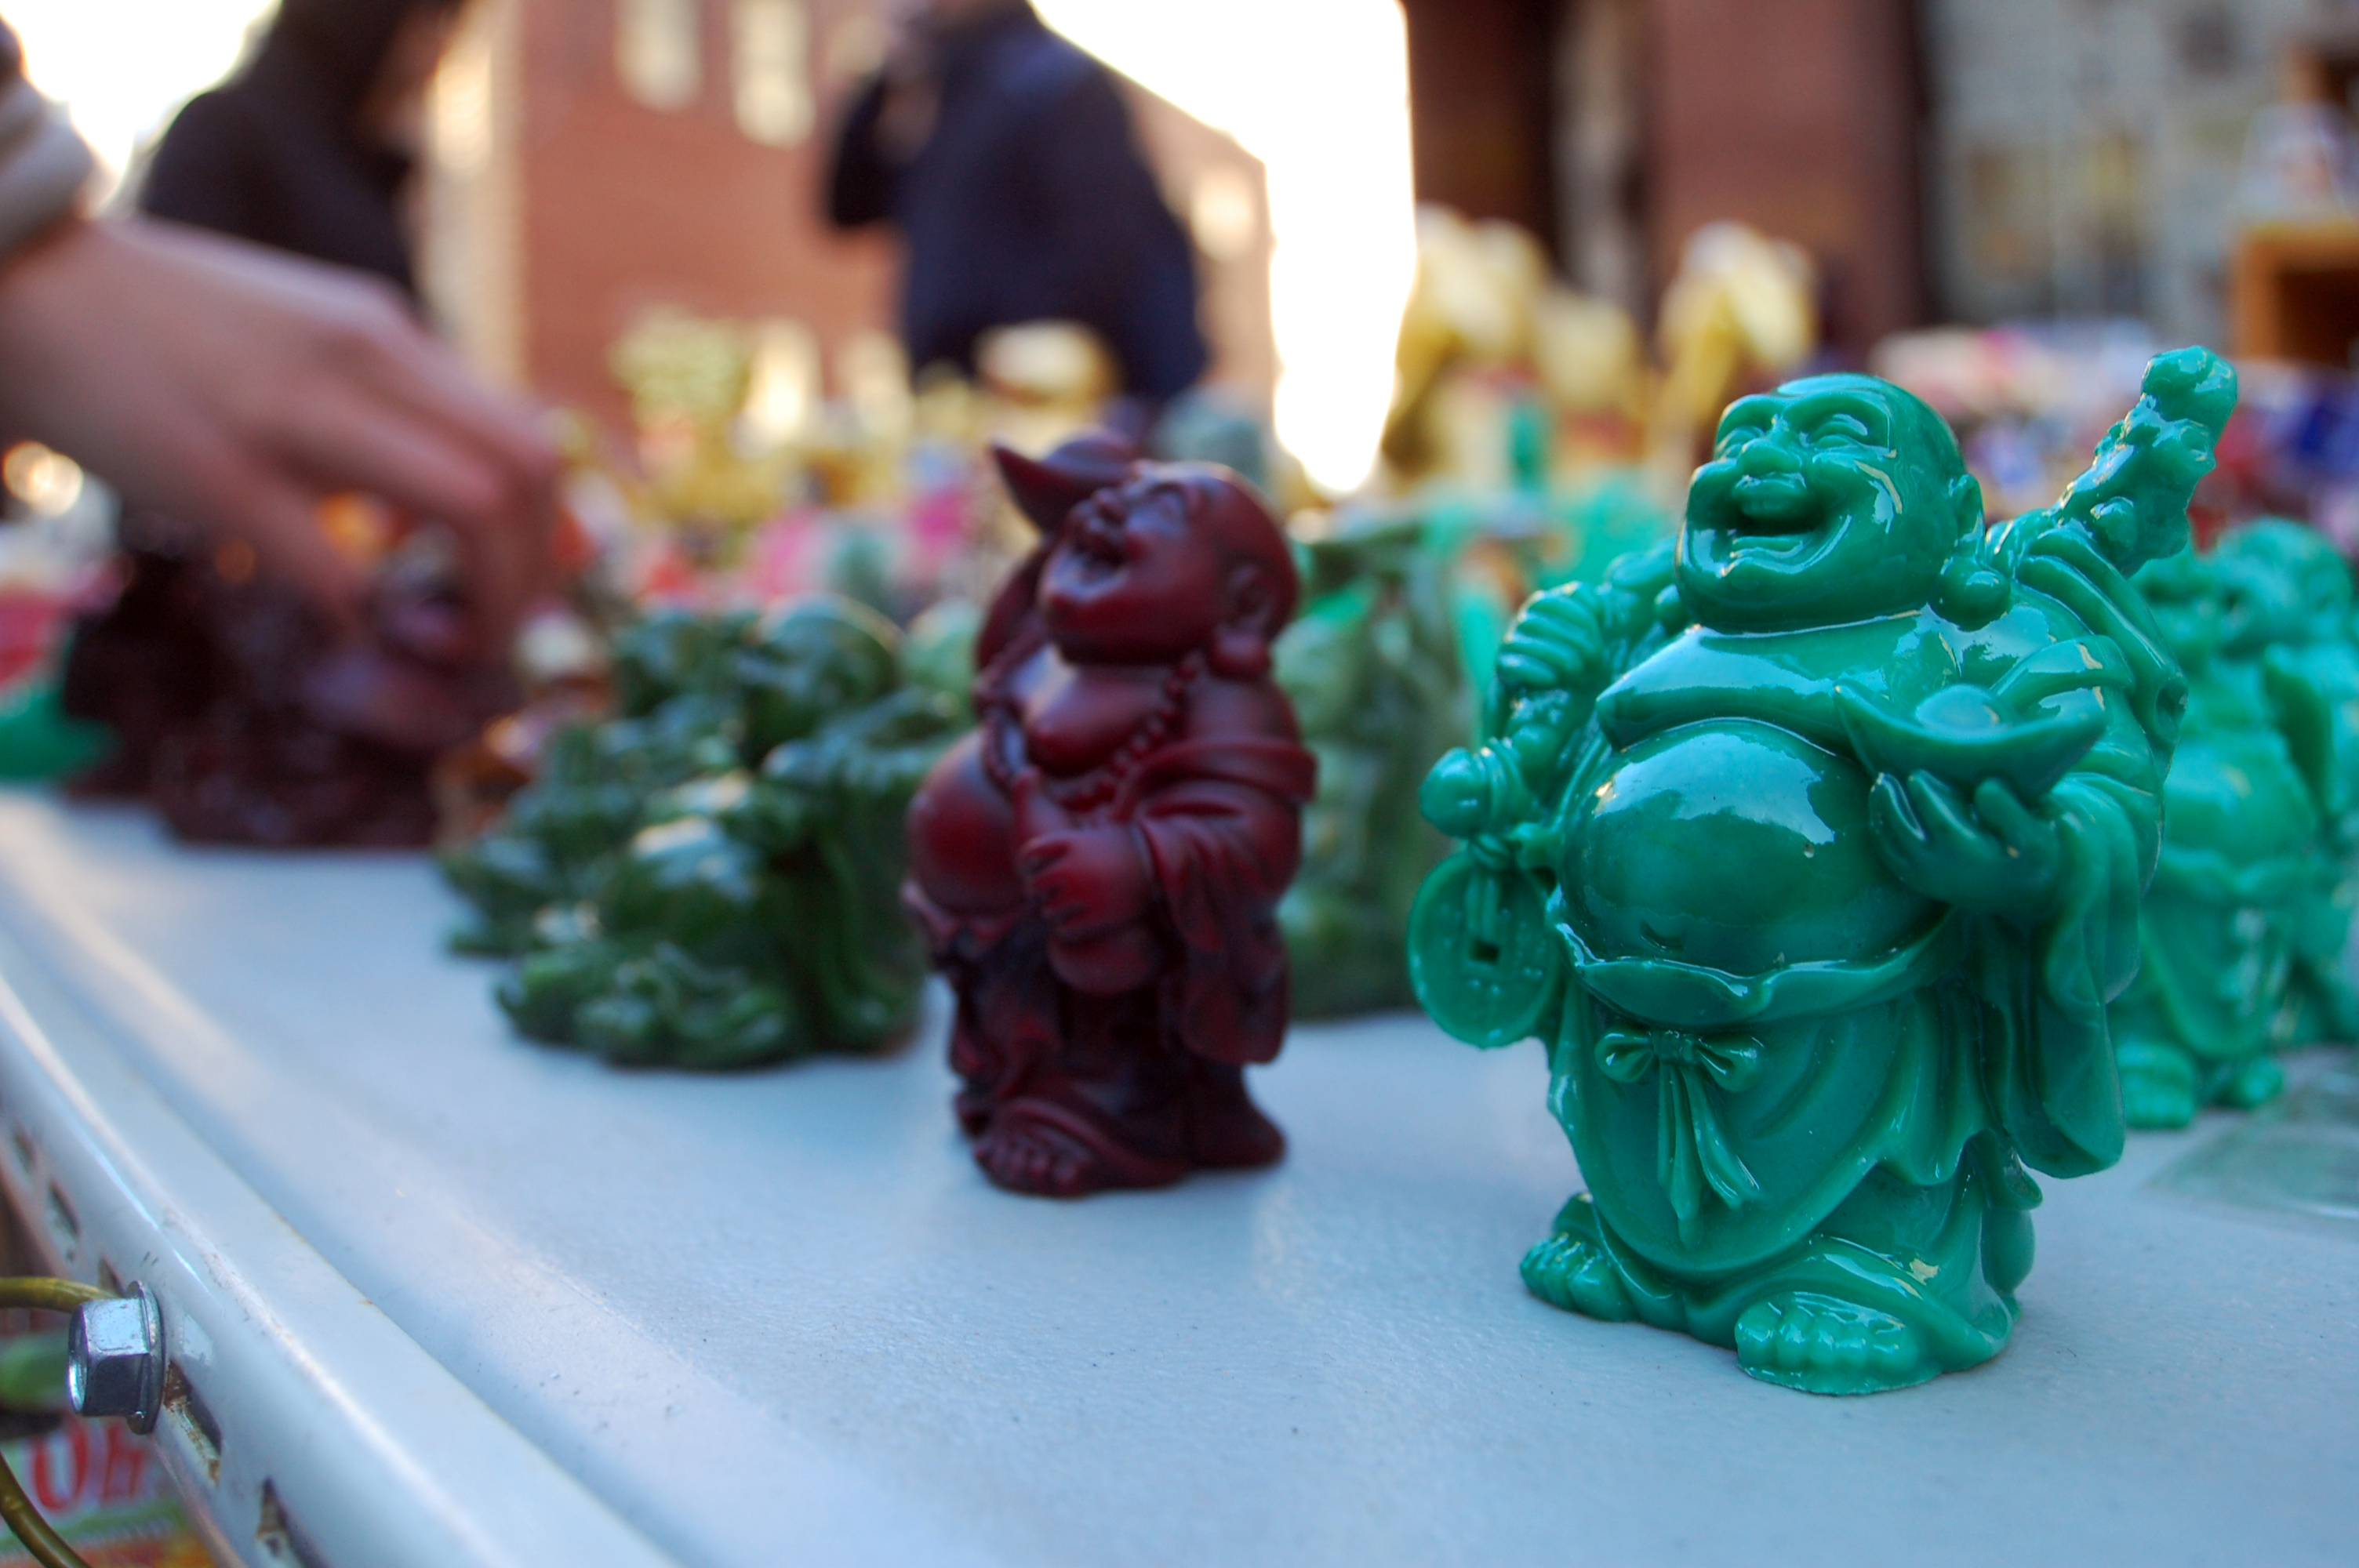 Miniature Buddha's were popular among the souvenir stands.